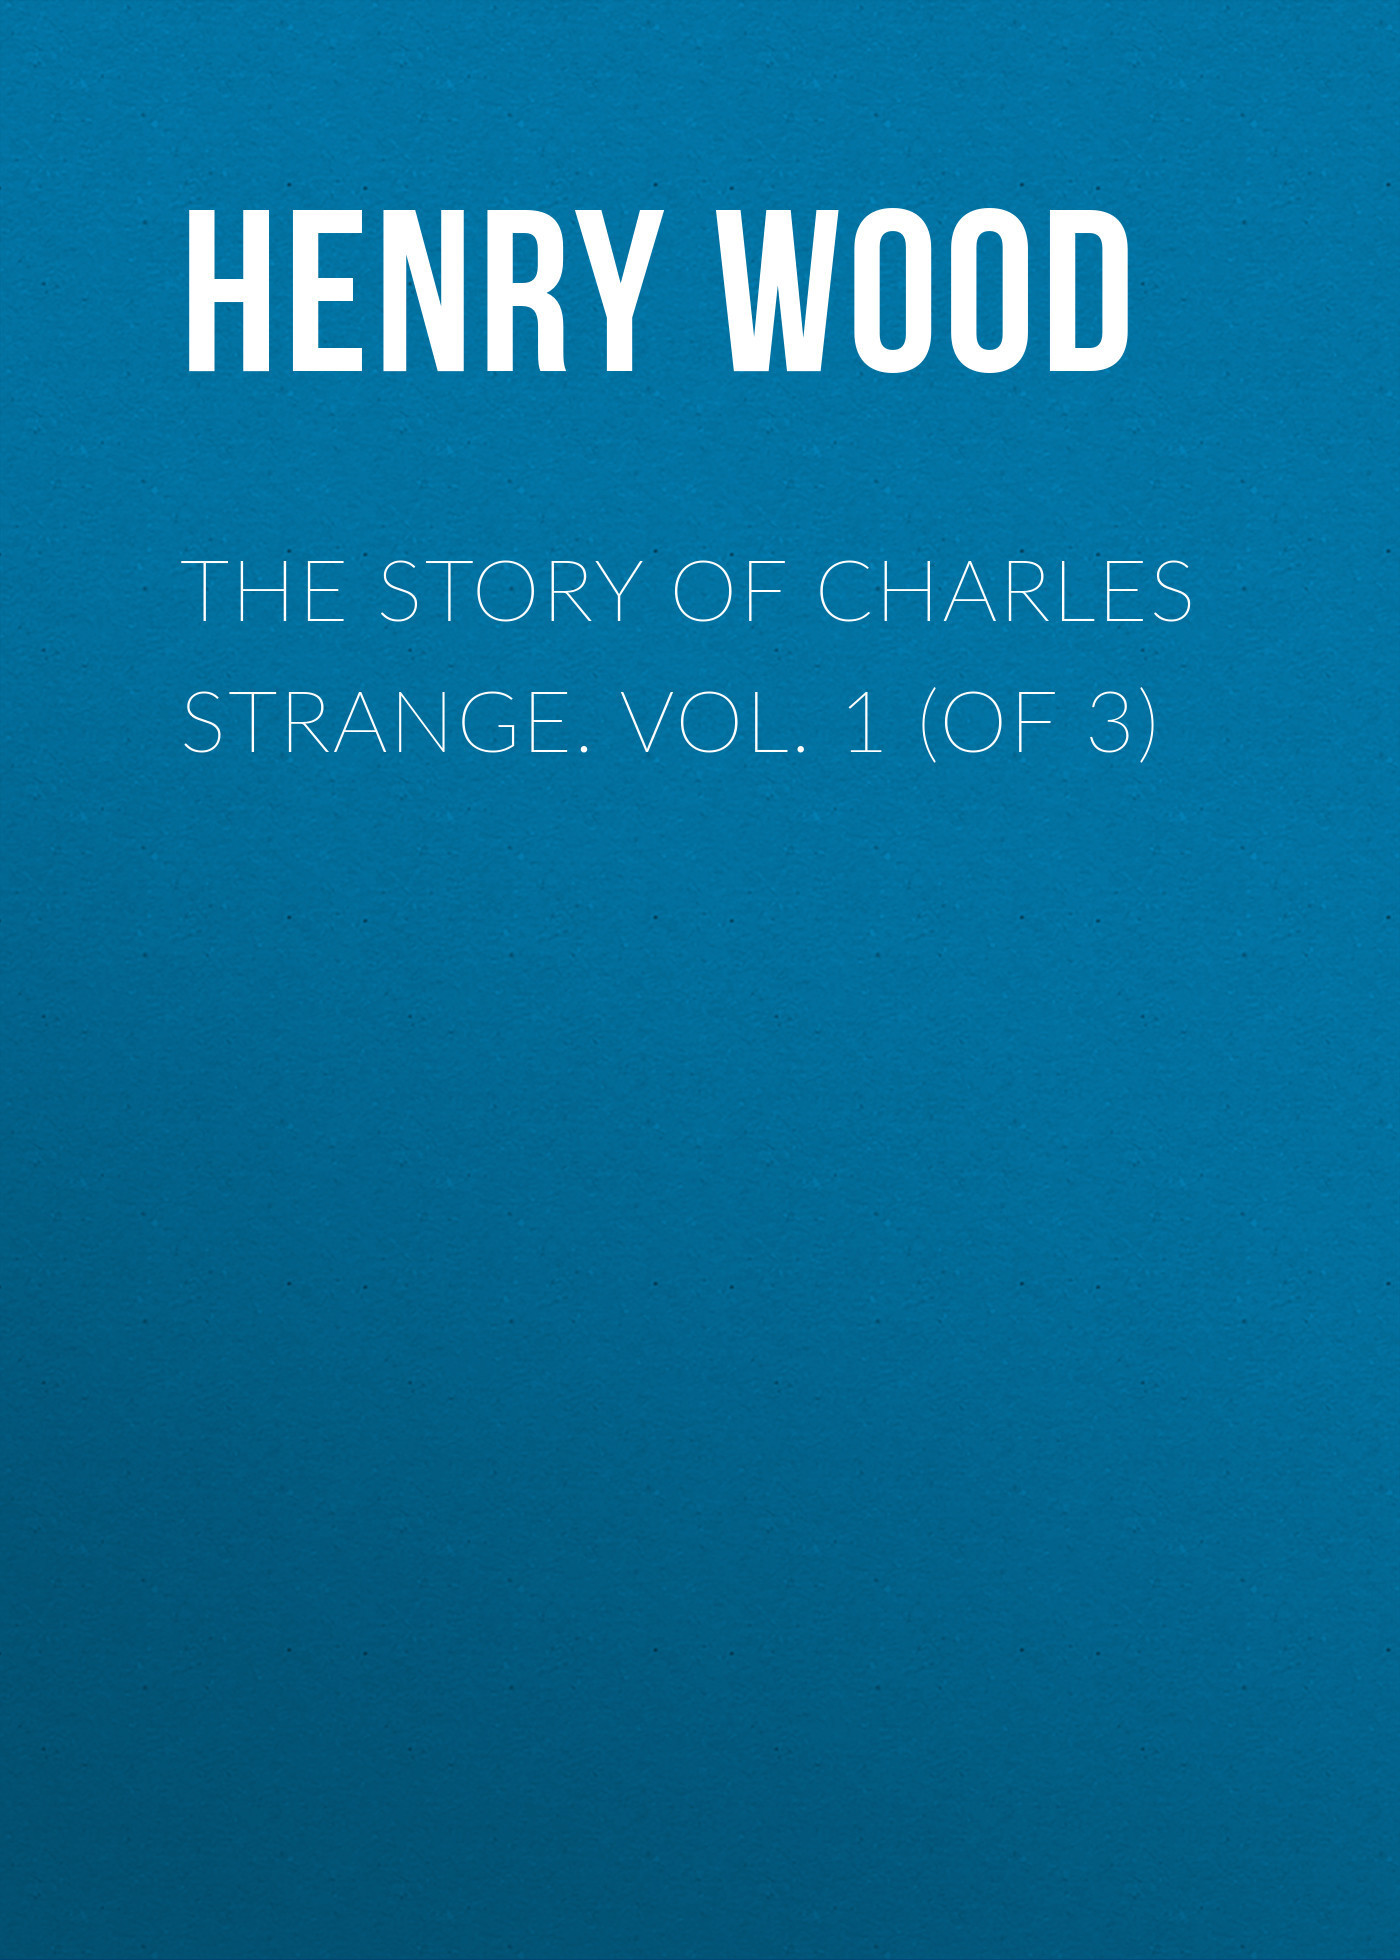 Henry Wood The Story of Charles Strange. Vol. 1 (of 3) henry wood mildred arkell vol 3 of 3